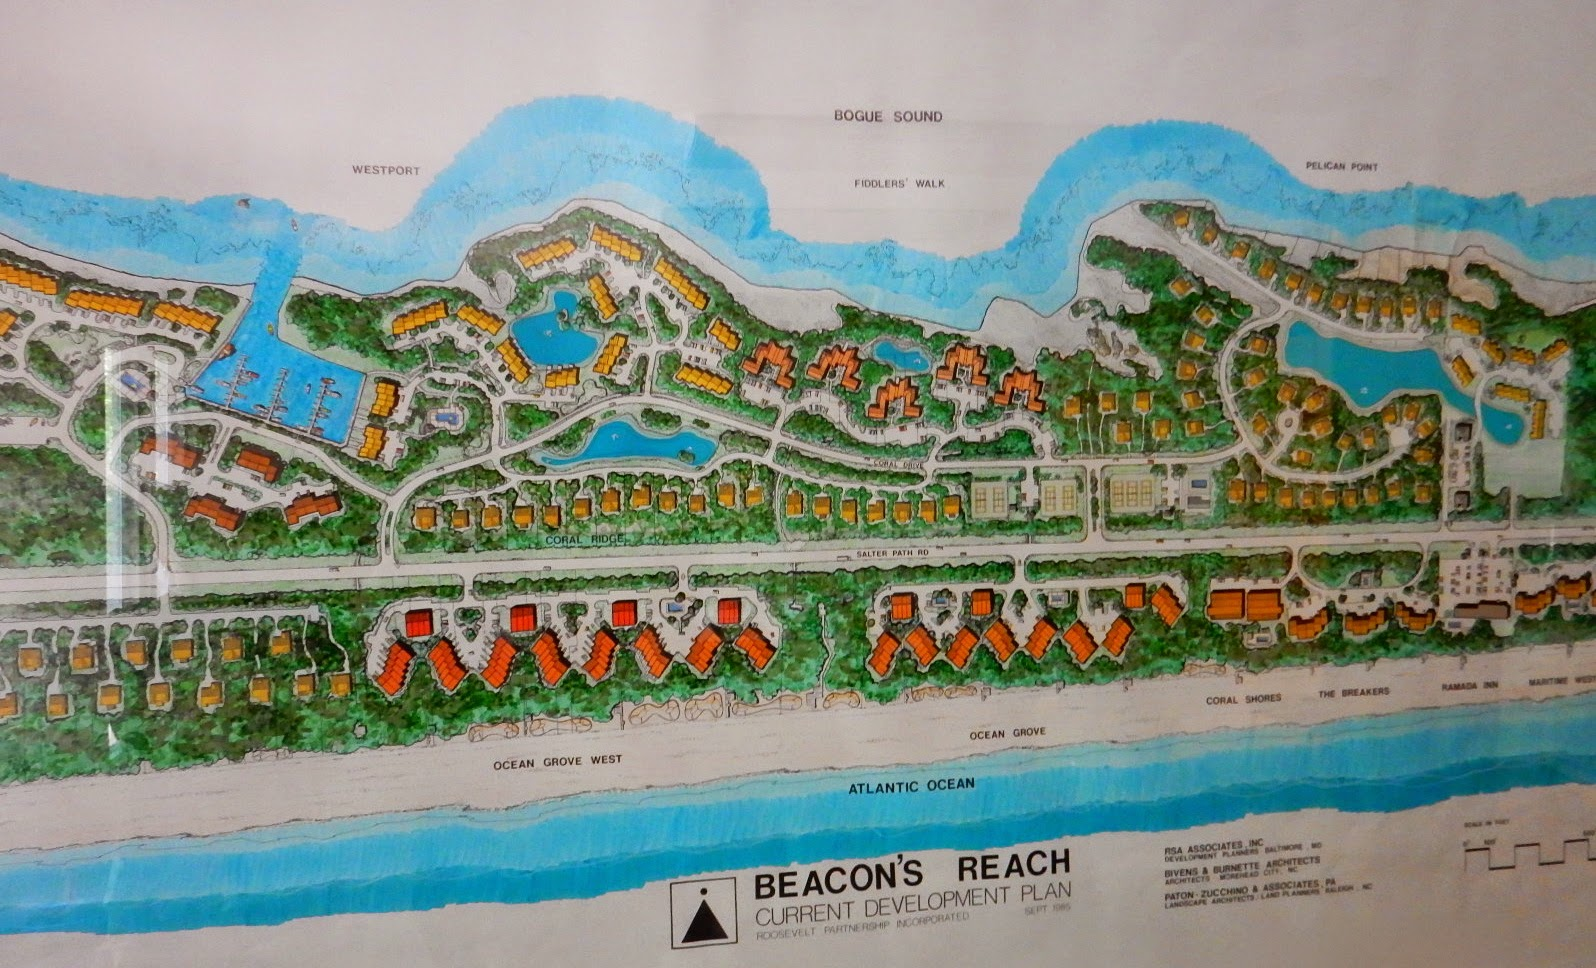 beacon s reach 1985 planning map on conference room wall in property management office